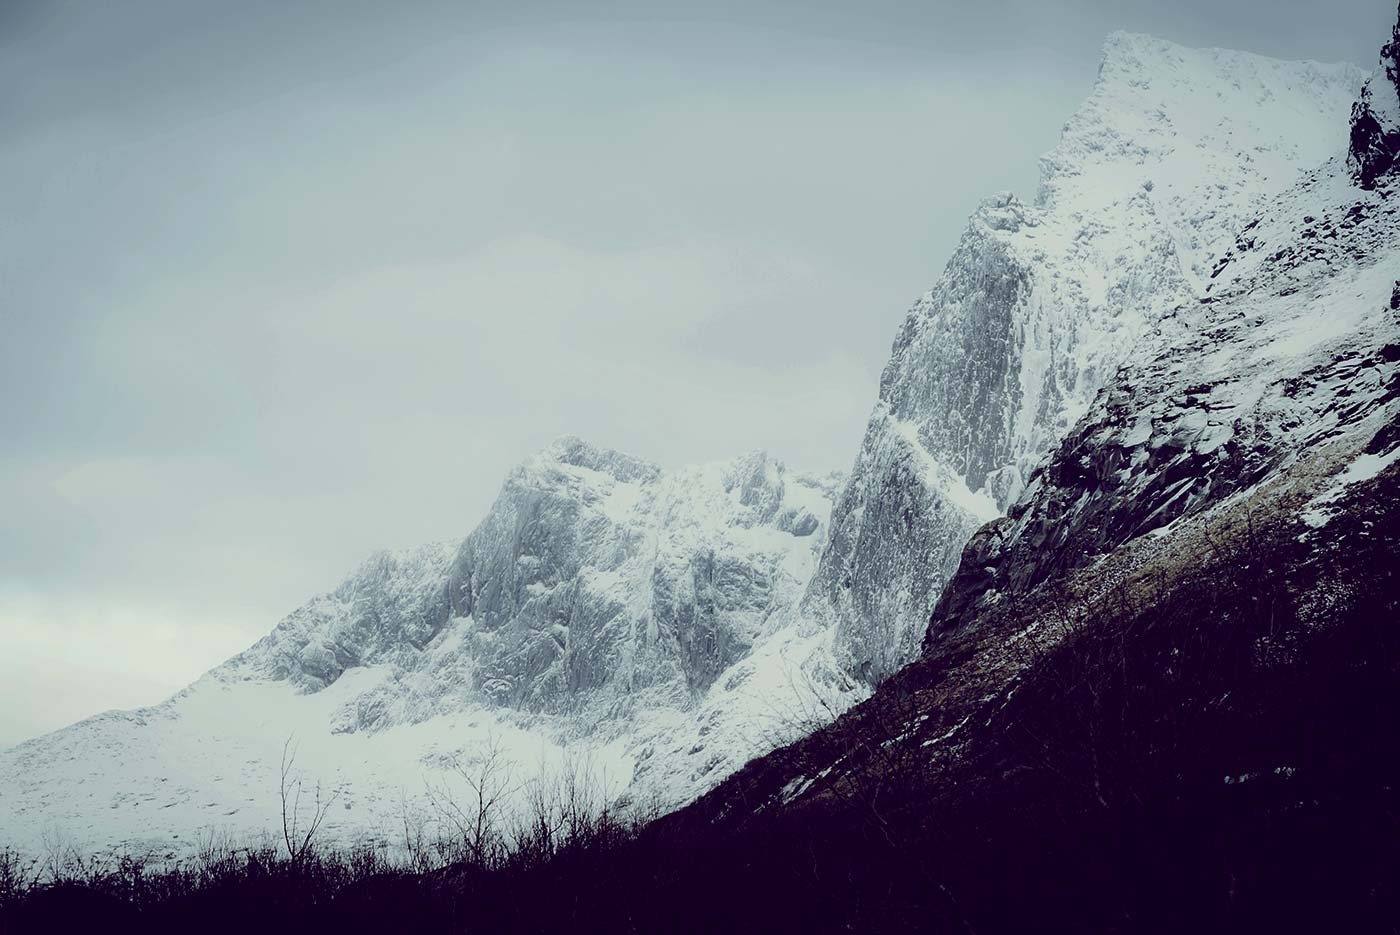 Cold Winter Mountains